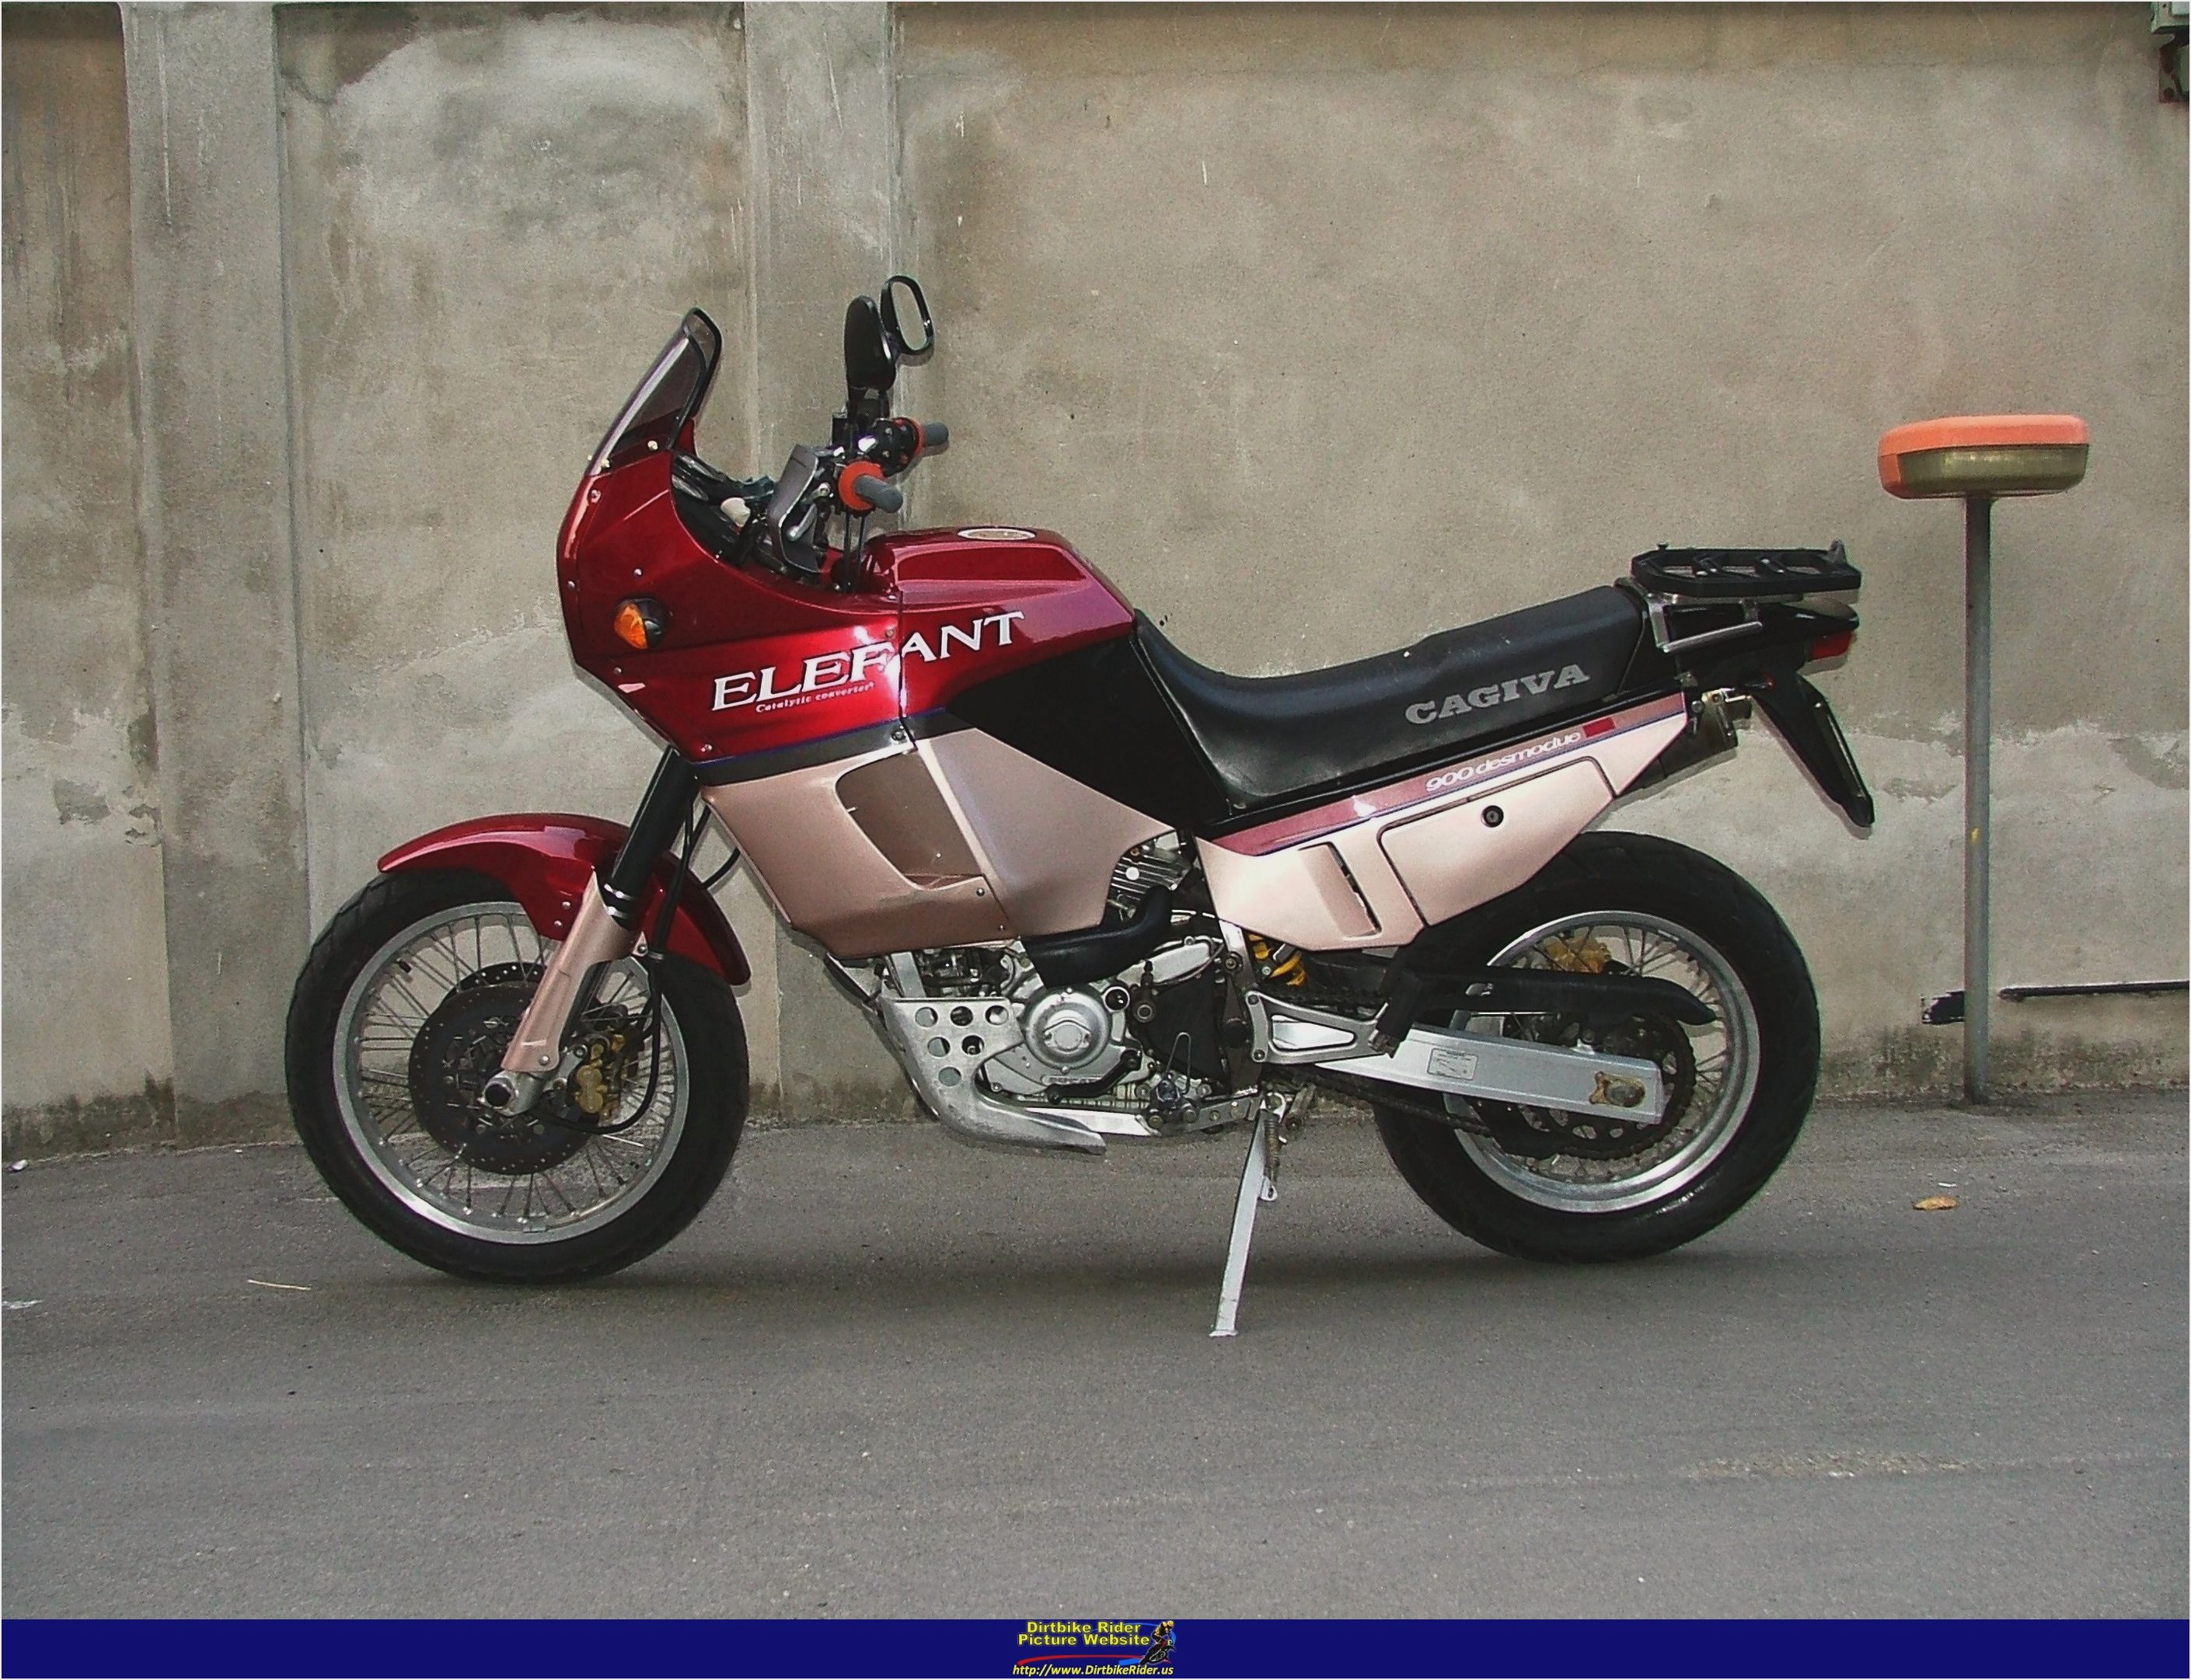 Cagiva Elefant 900 IE 1990 images #68848